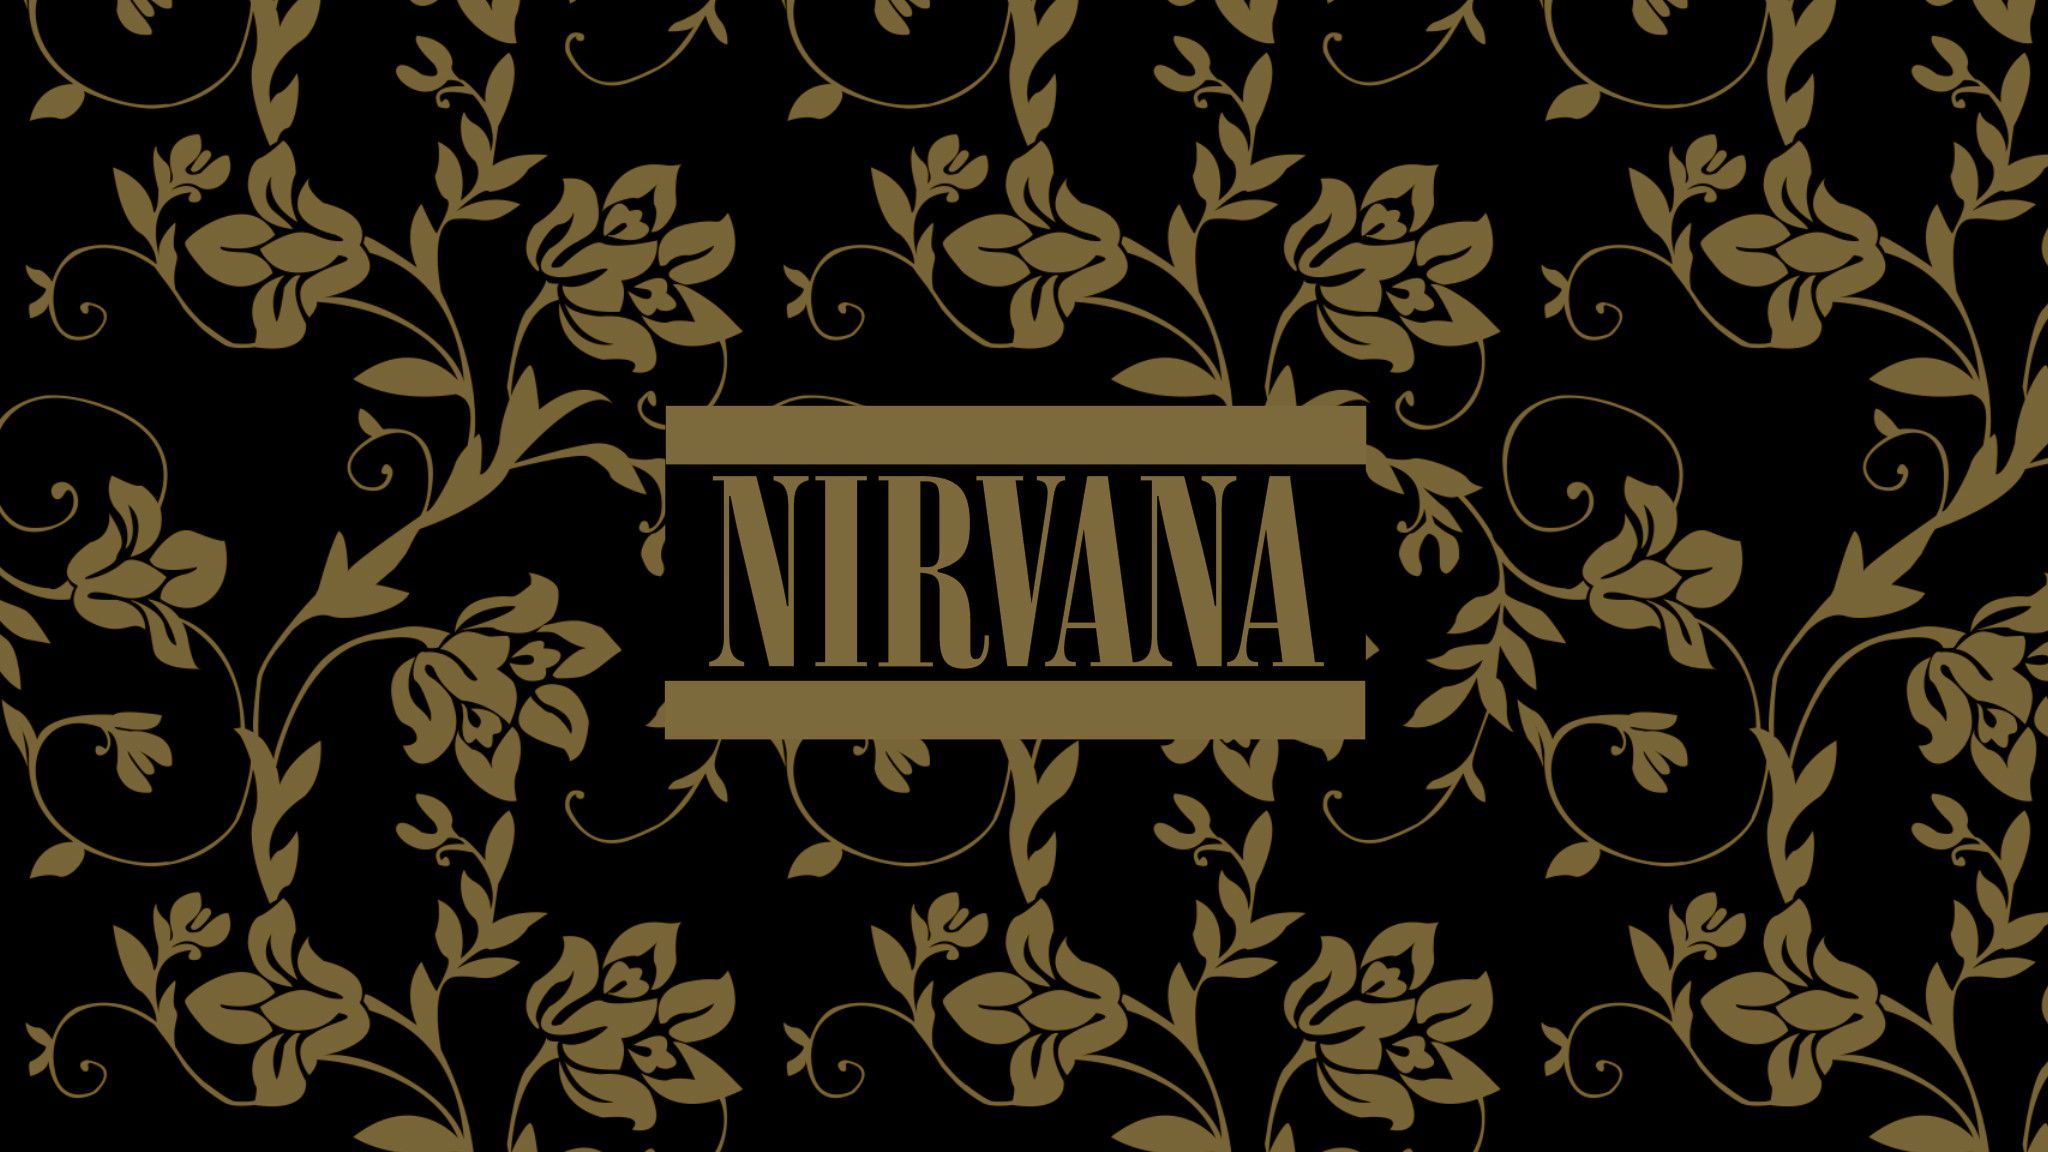 Grunge Desktop Wallpapers Group Band wallpapers, Nirvana